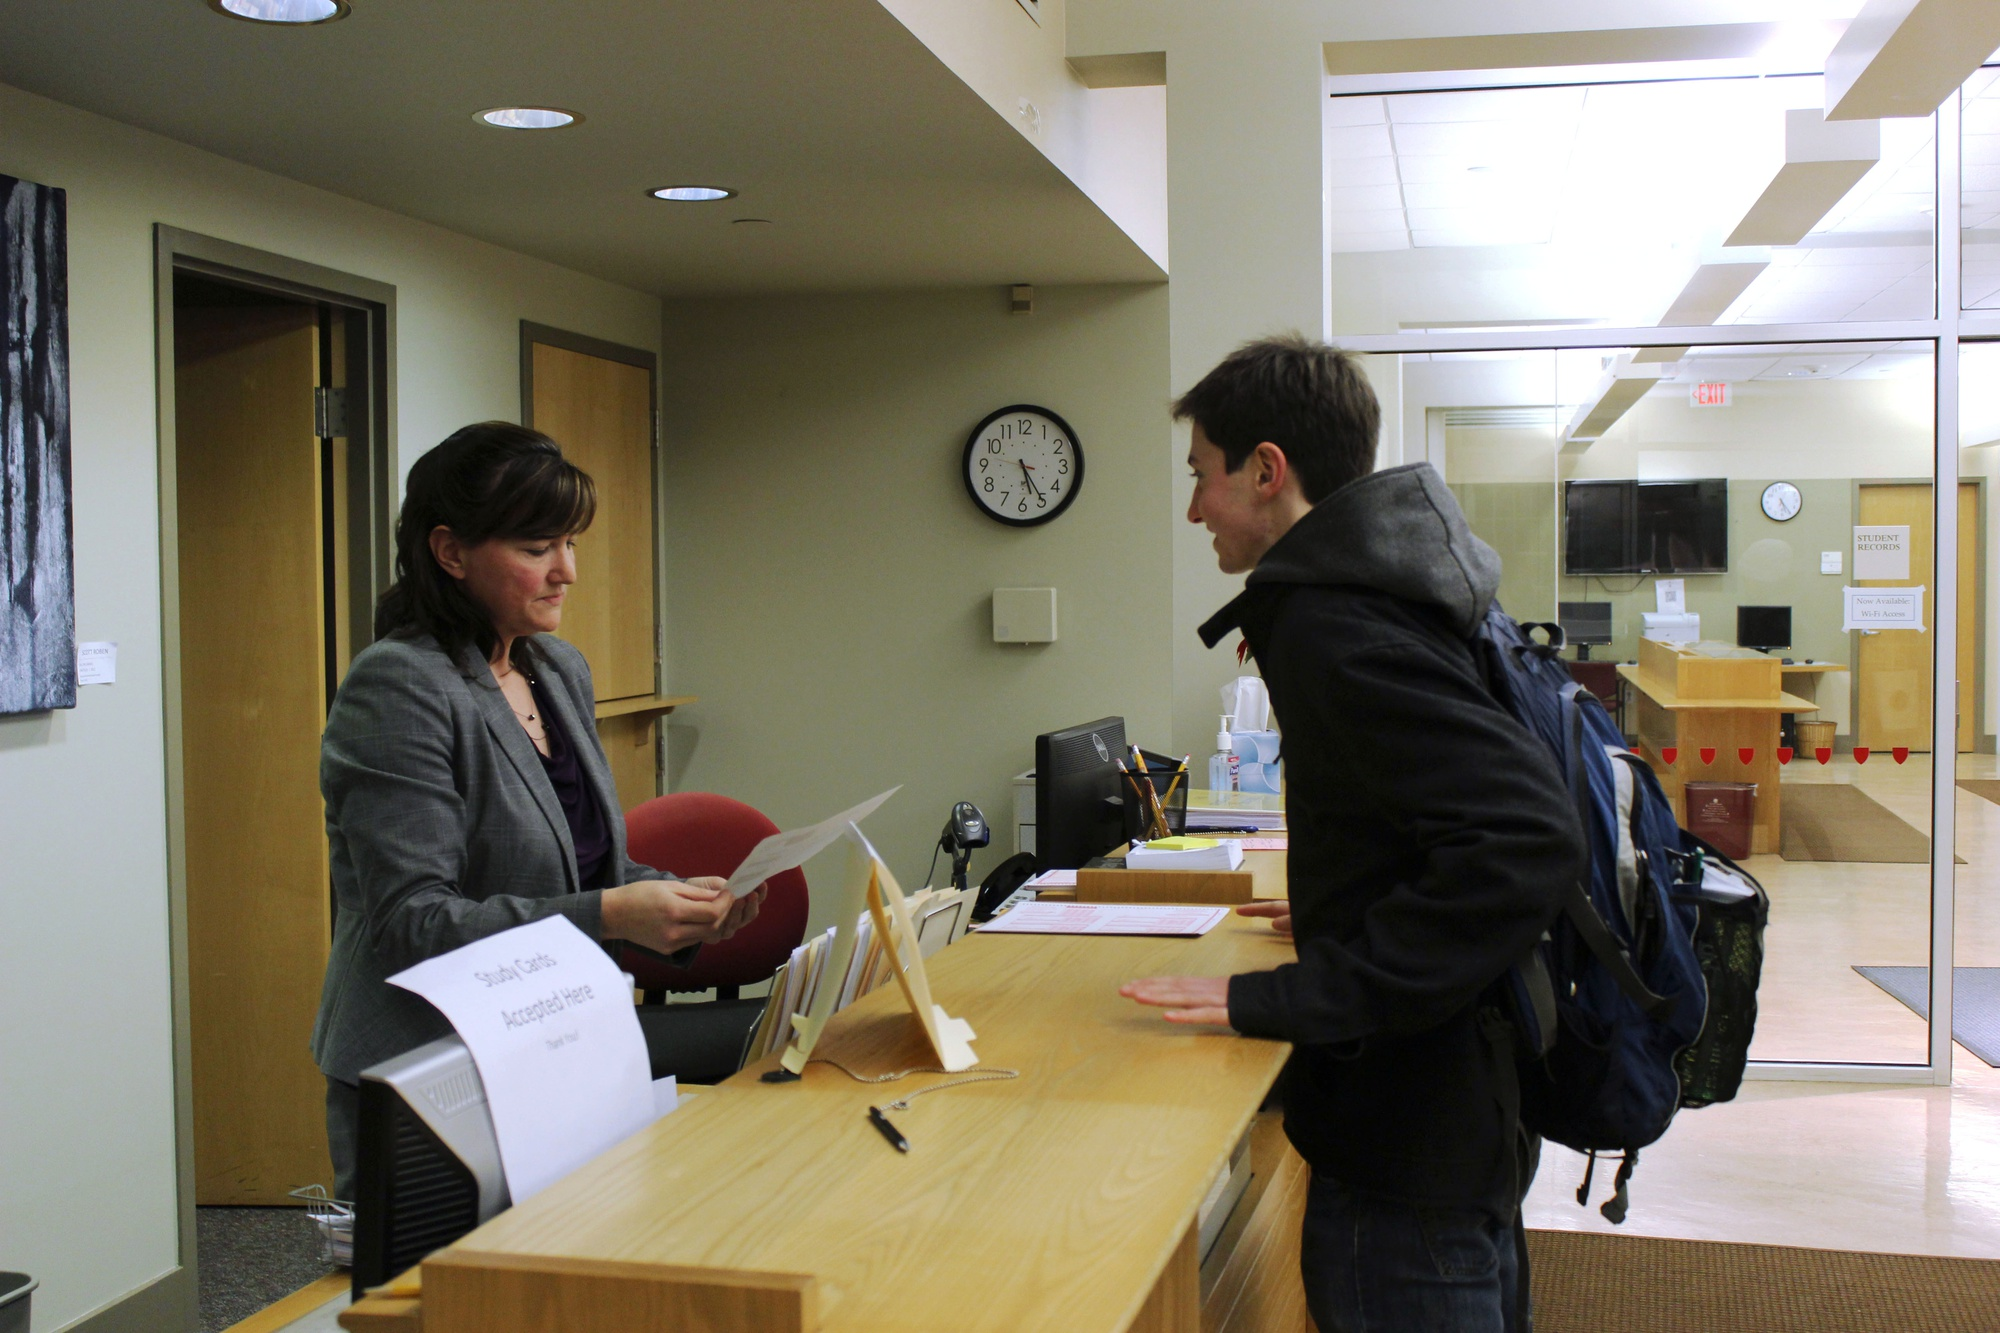 Associate Registrar for Enrollment Services Maggie Welsh reviews a study card at the Office of the Registrar Wednesday afternoon. Students took advantage of the fact that they would not be penalized with a late fee if they turned in their study cards late after a winter storm interrupted shopping week.